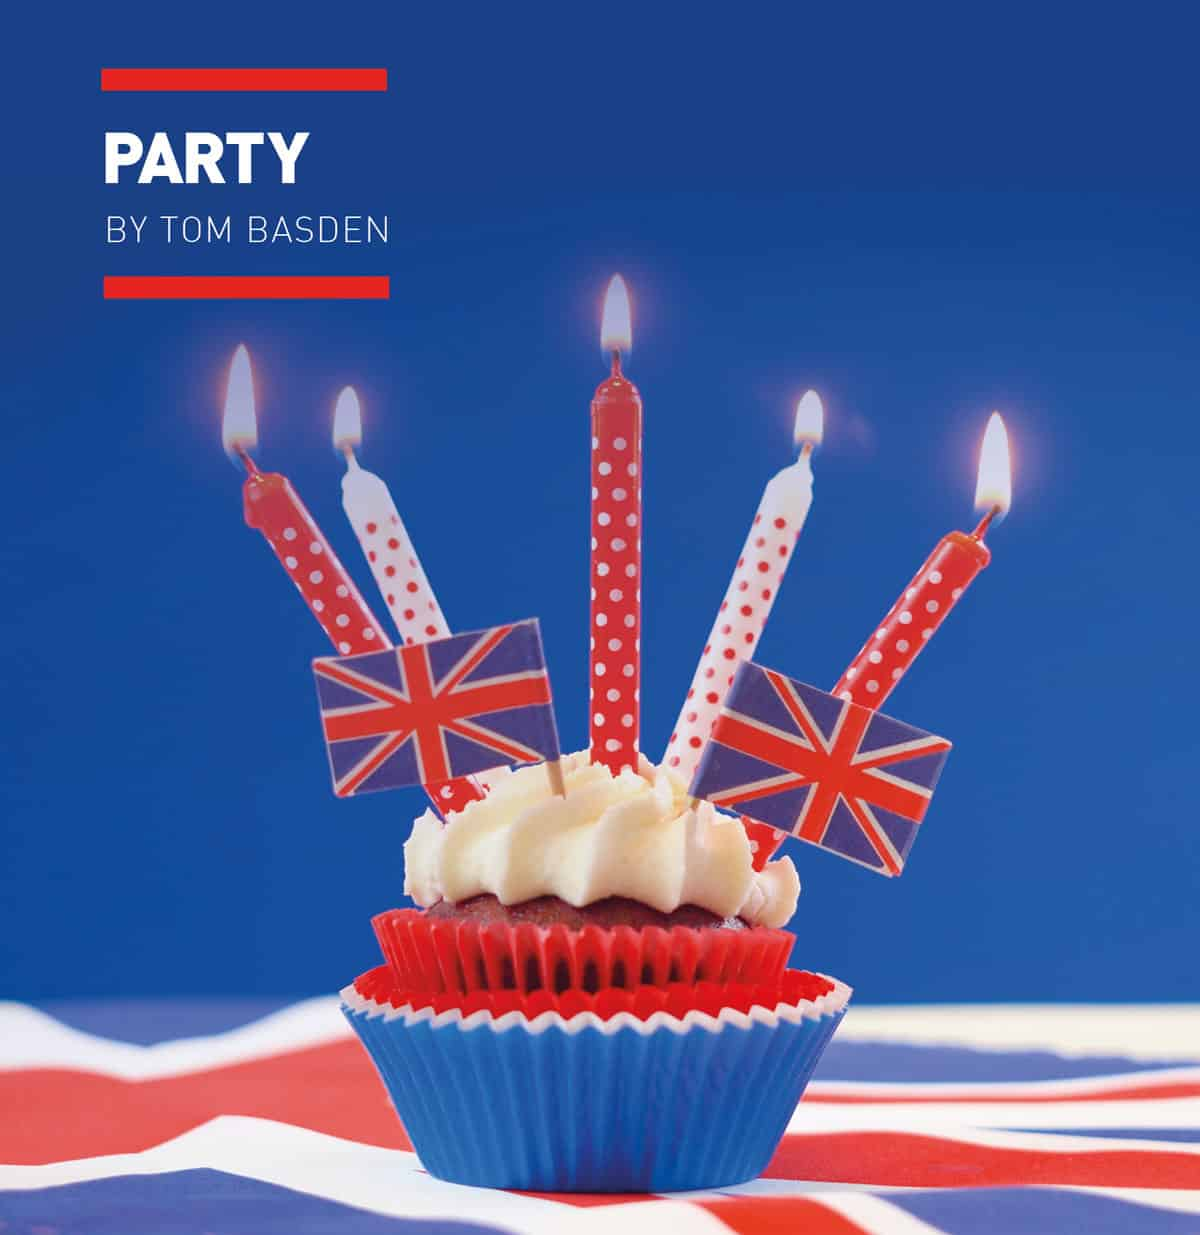 Party by Tom Basden, radio play from Masquerade Theatre